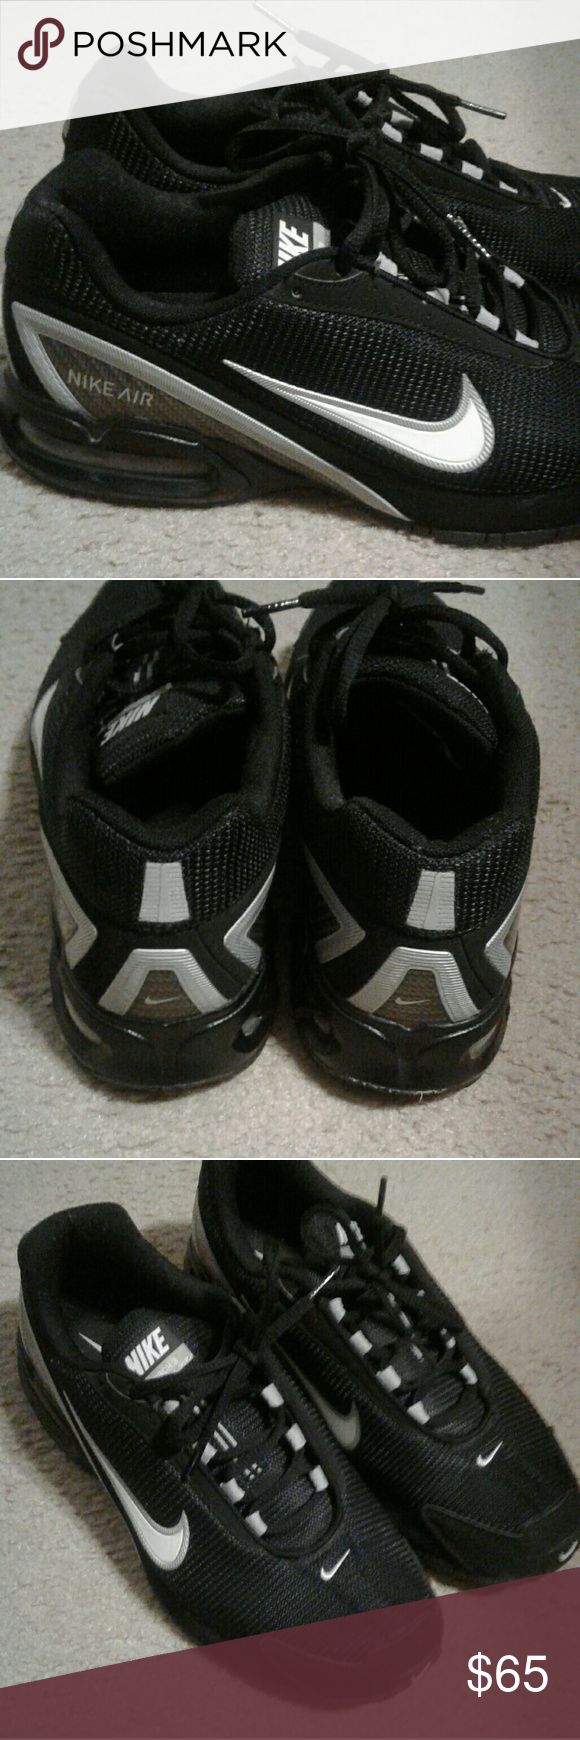 Nike Air Black and White Nike Air men size 9, ladies can wear them too Nike Shoes Sneakers